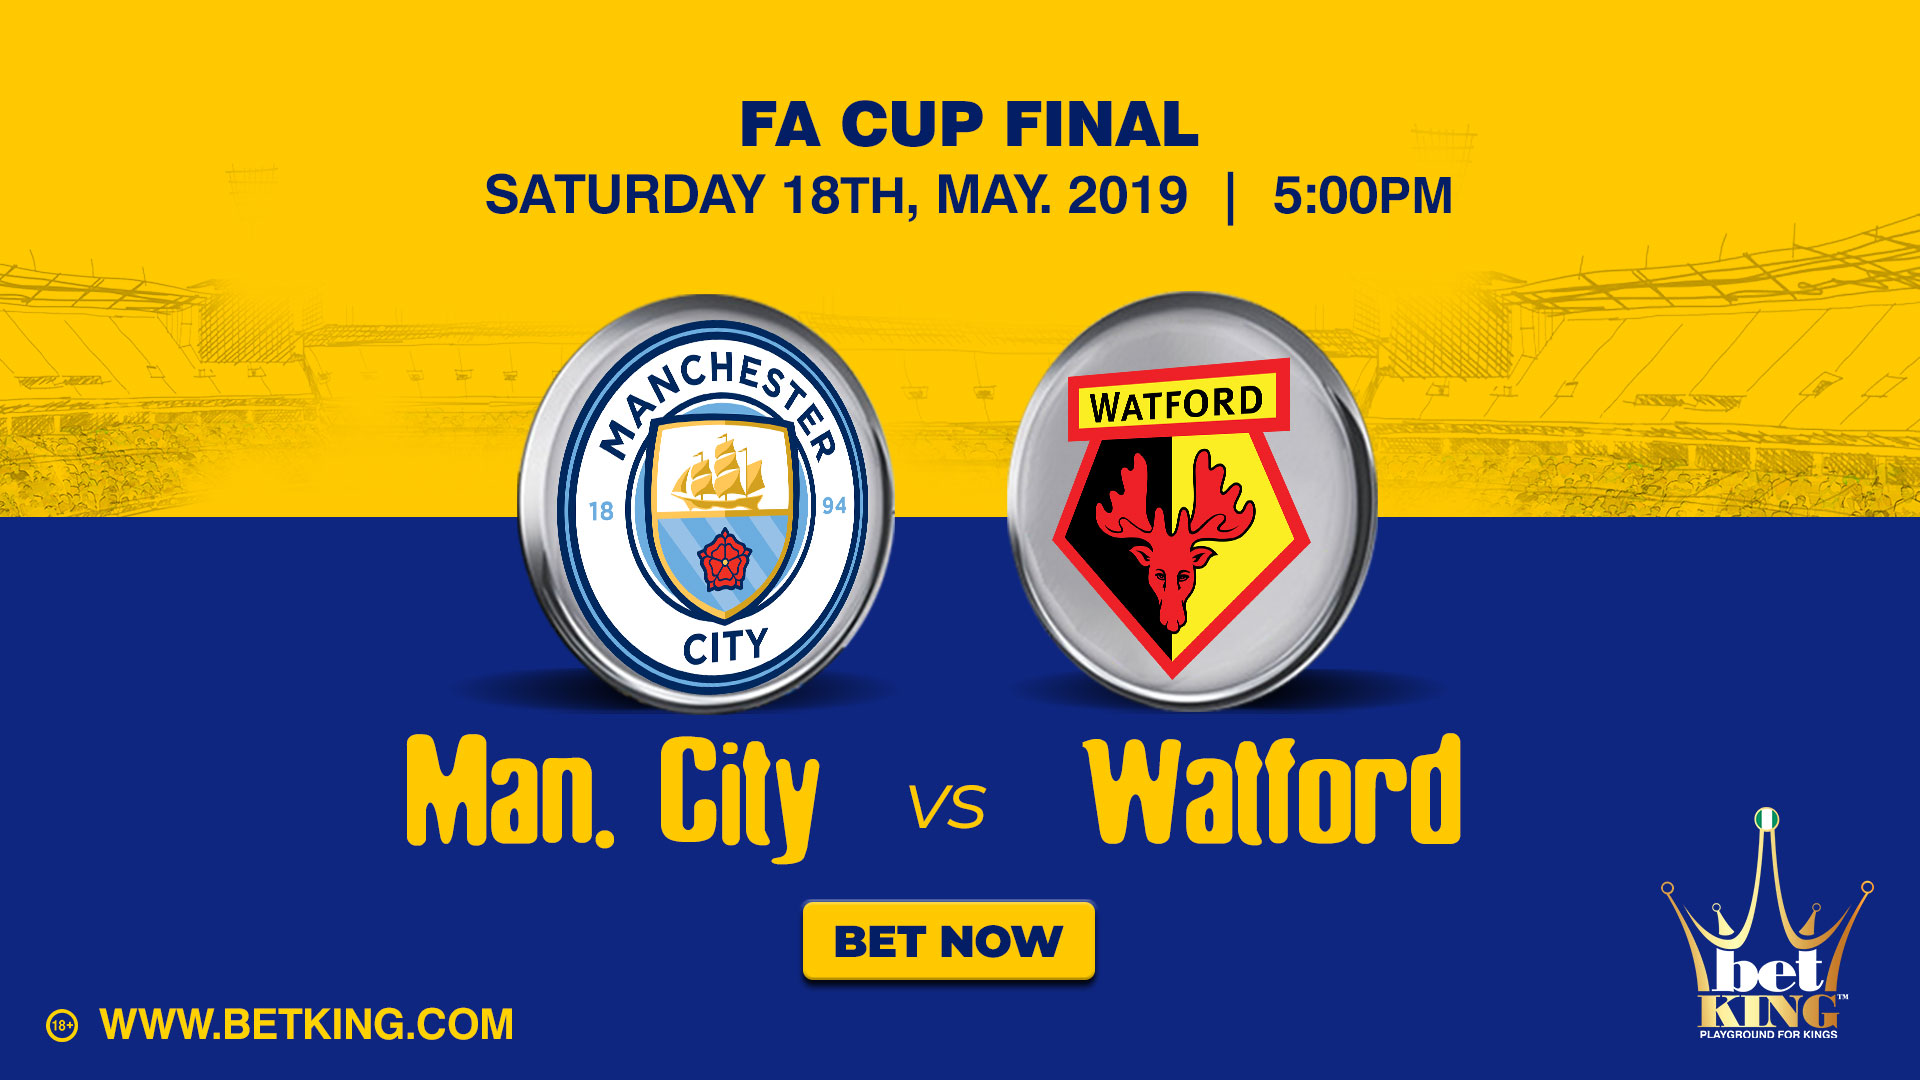 Betking FA Cup